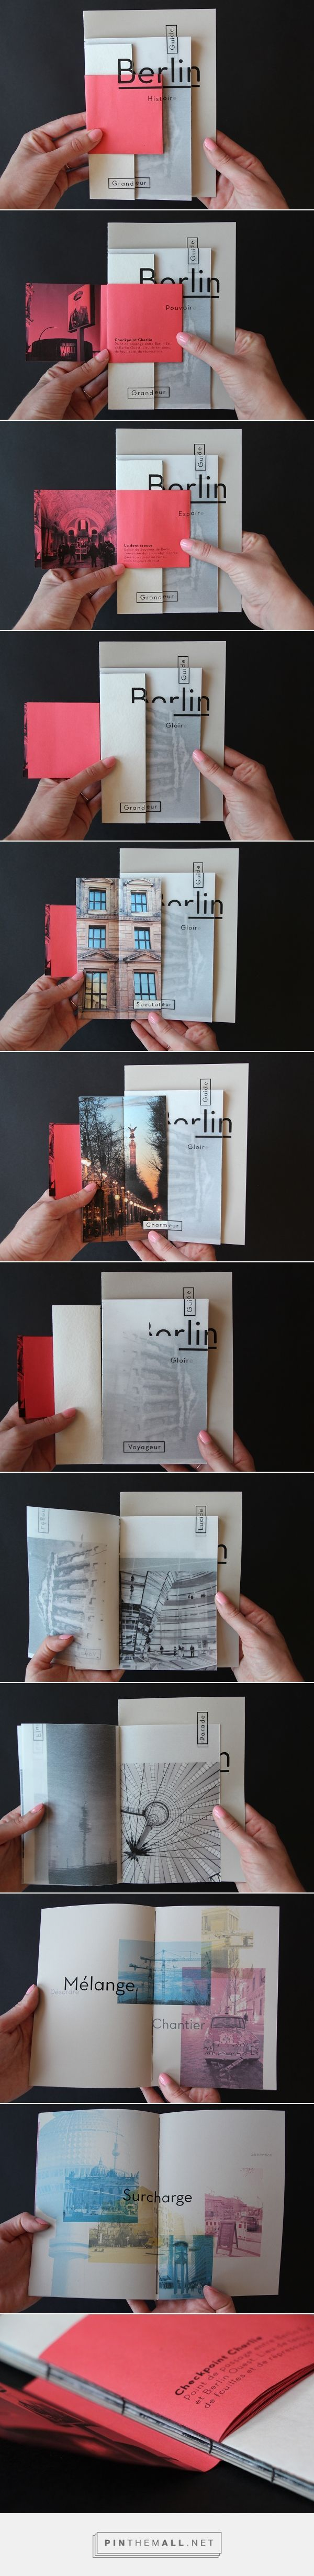 Fragments d'un voyage on Editorial Design Served